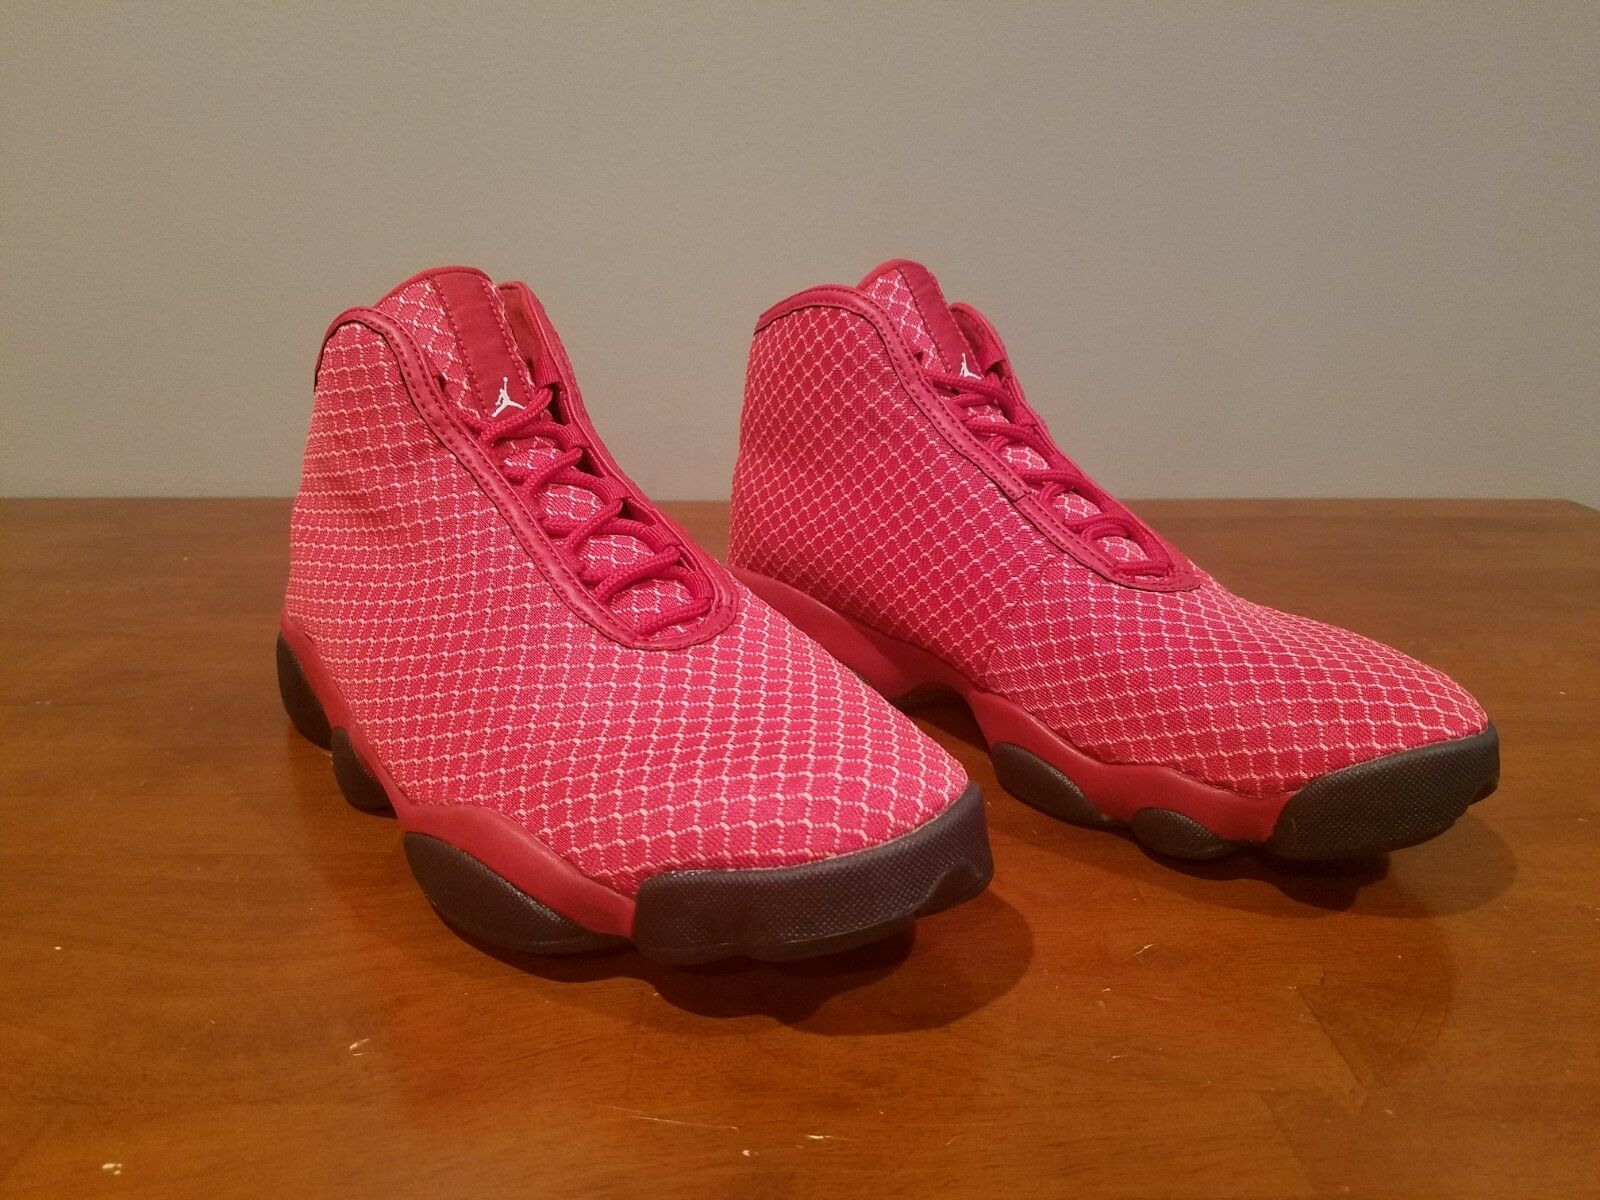 Nike Air Jordan Horizon Gym Red Men's Basketball Sneakers 823581-600 SZ 10 -10.5